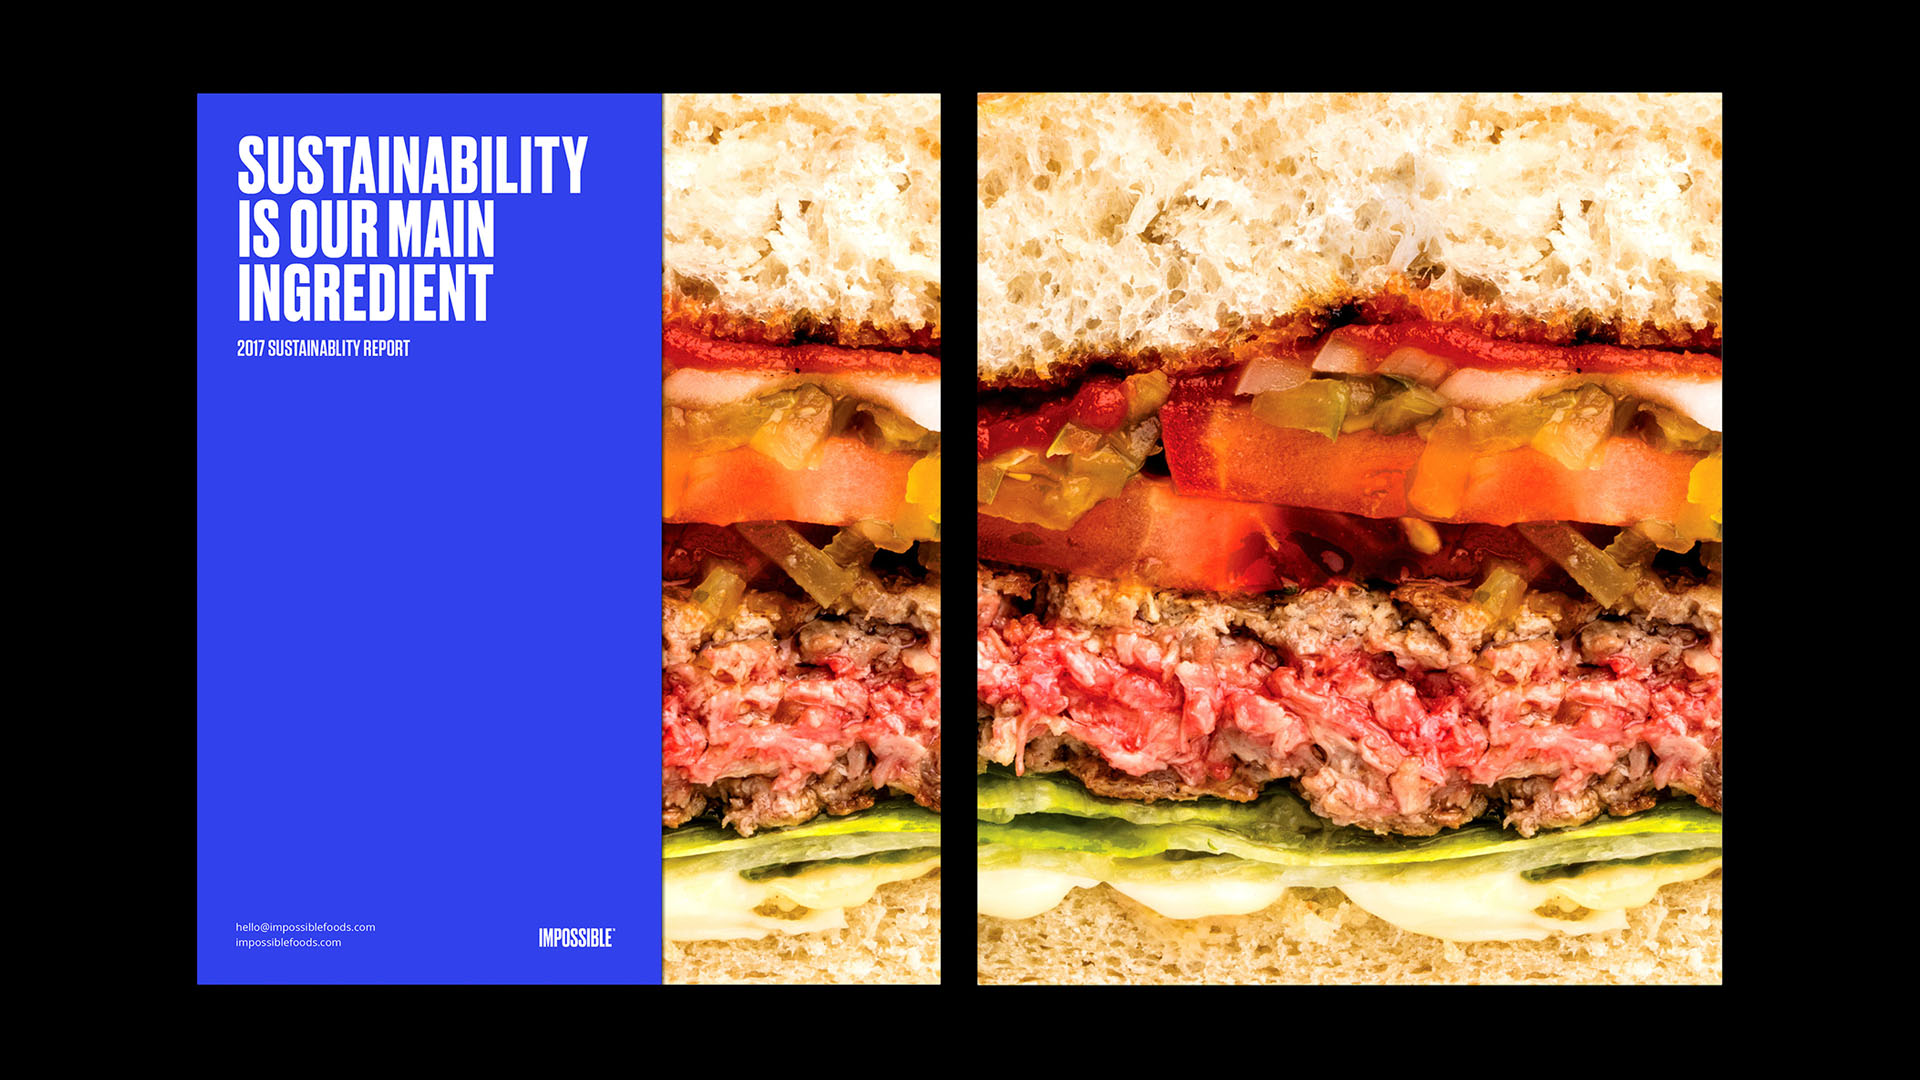 Impossible Foods: Sustainability Report